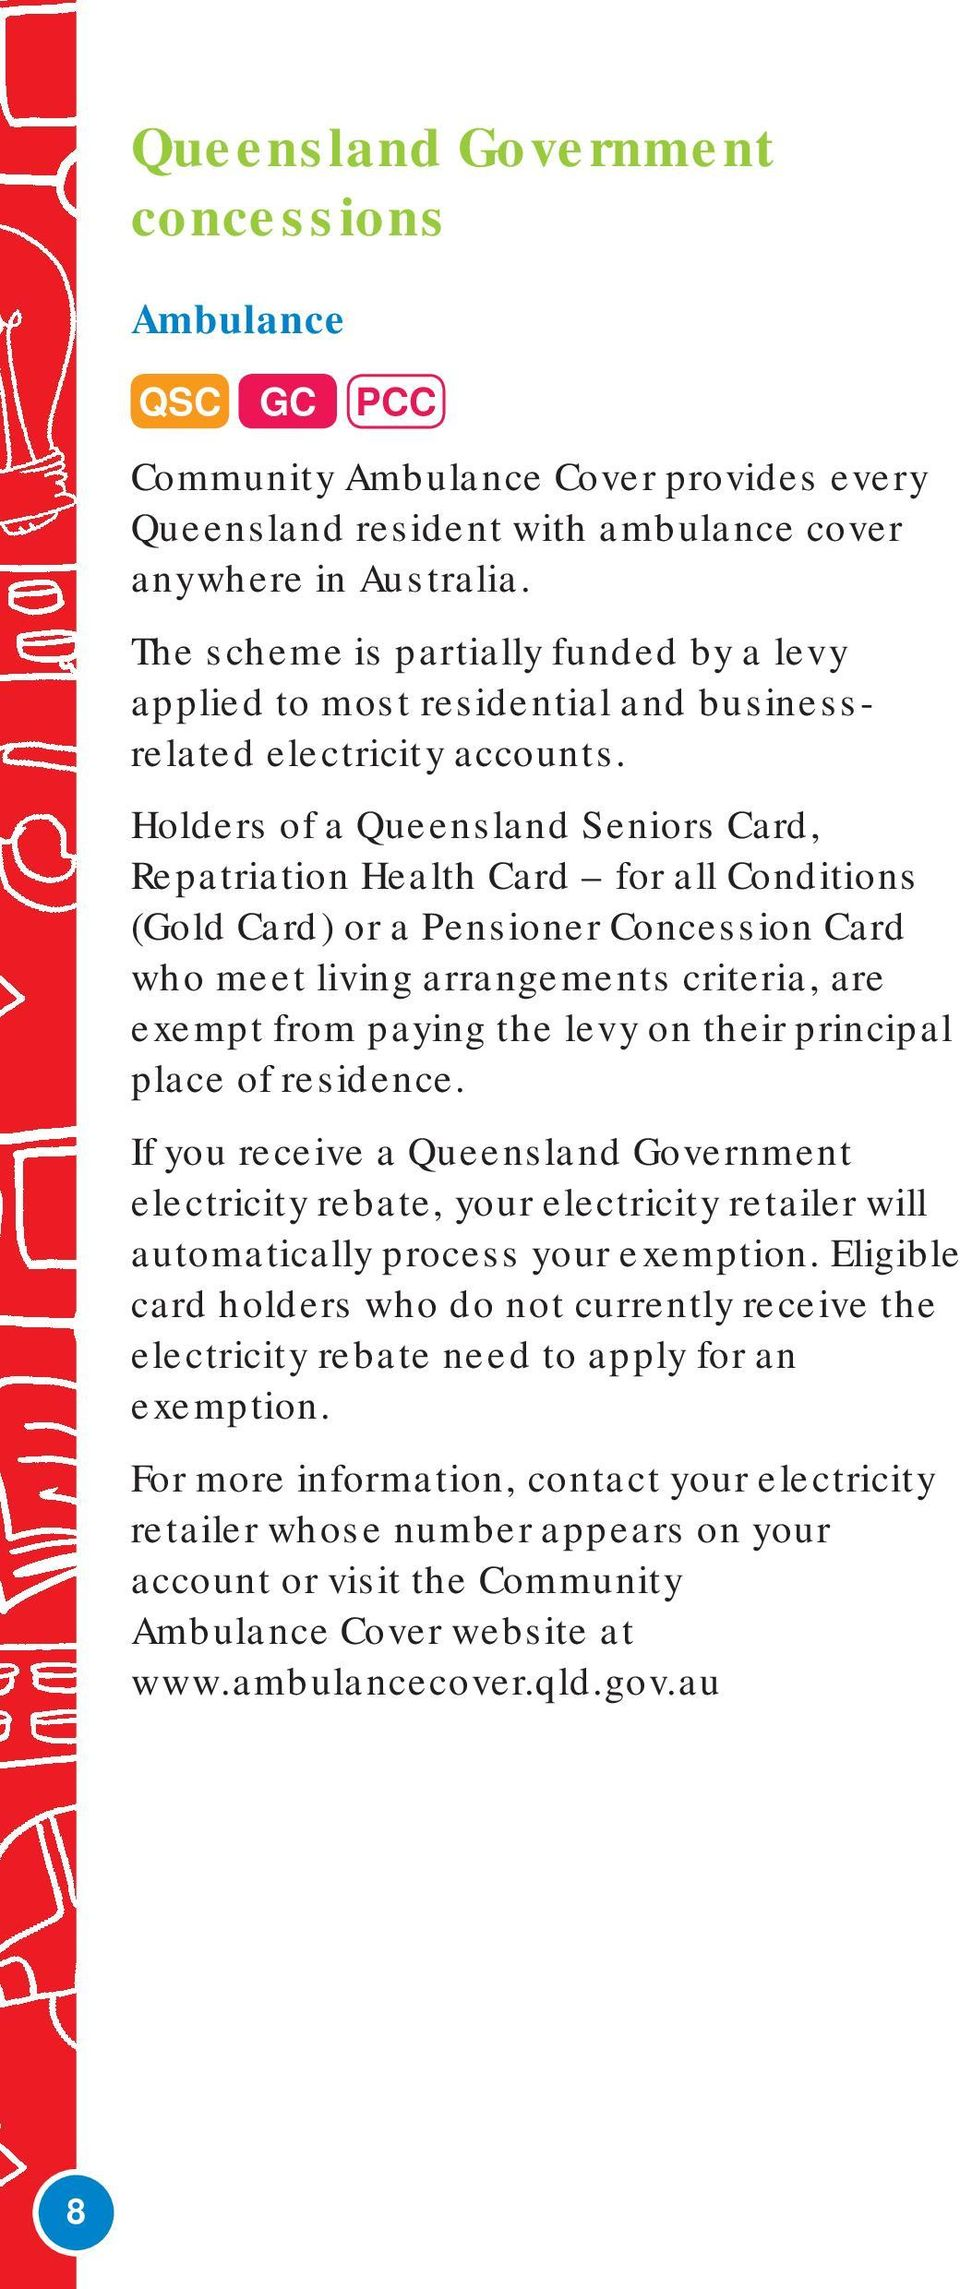 Holders of a Queensland Seniors Card, Repatriation Health Card for all Conditions (Gold Card) or a Pensioner Concession Card who meet living arrangements criteria, are exempt from paying the levy on